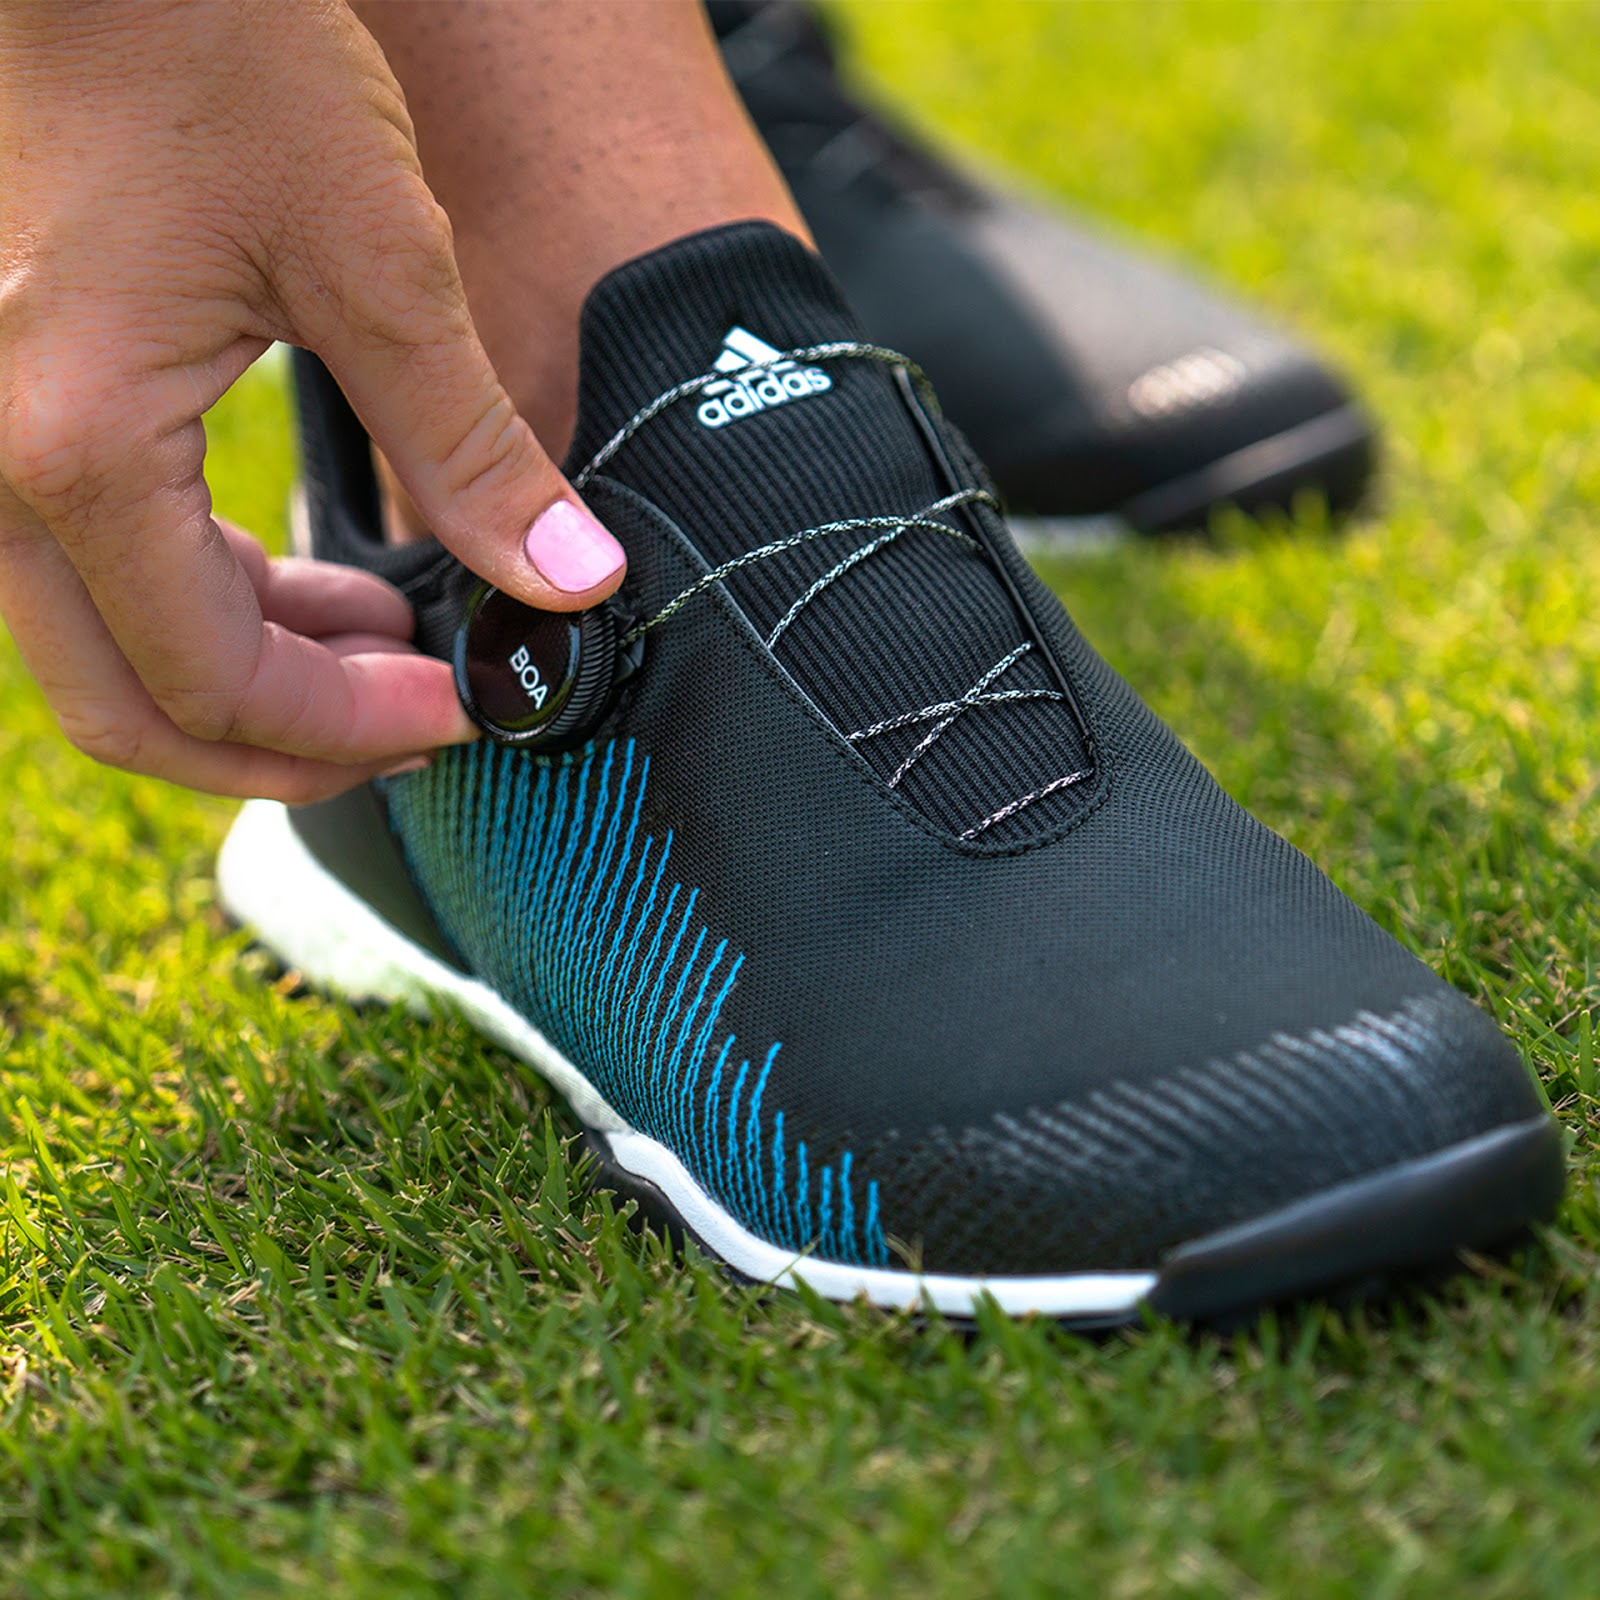 3bfde4bab27f The  1 Writer in Golf  Adidas 2019 Forgefiber BOA Golf Shoes Preview ...